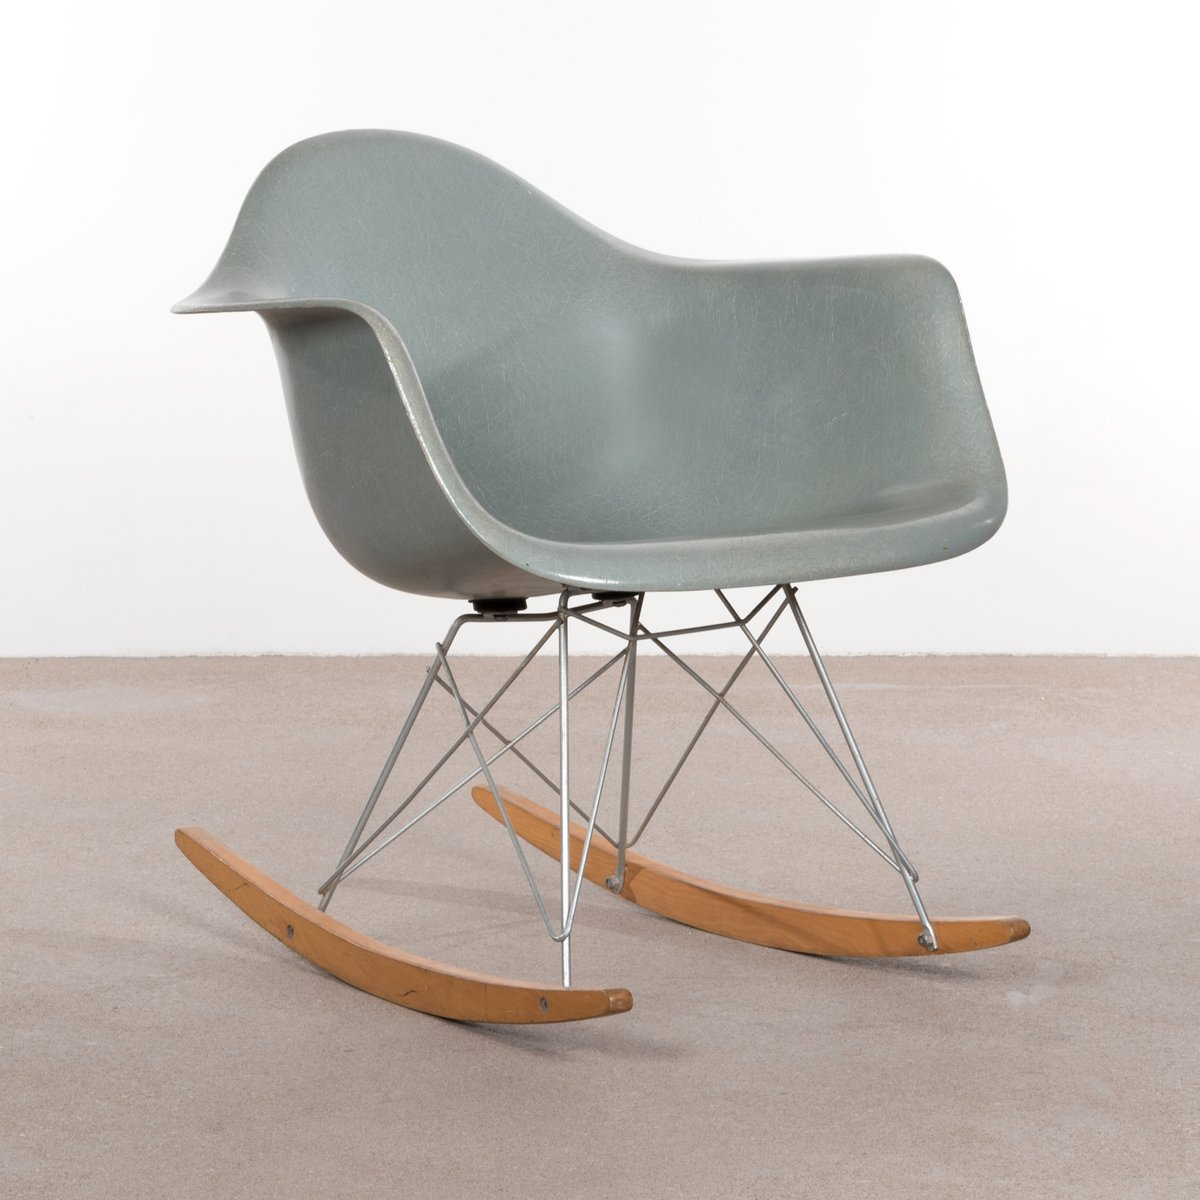 Rar rocking chair by charles ray eames for herman miller for Chaises rar charles eames